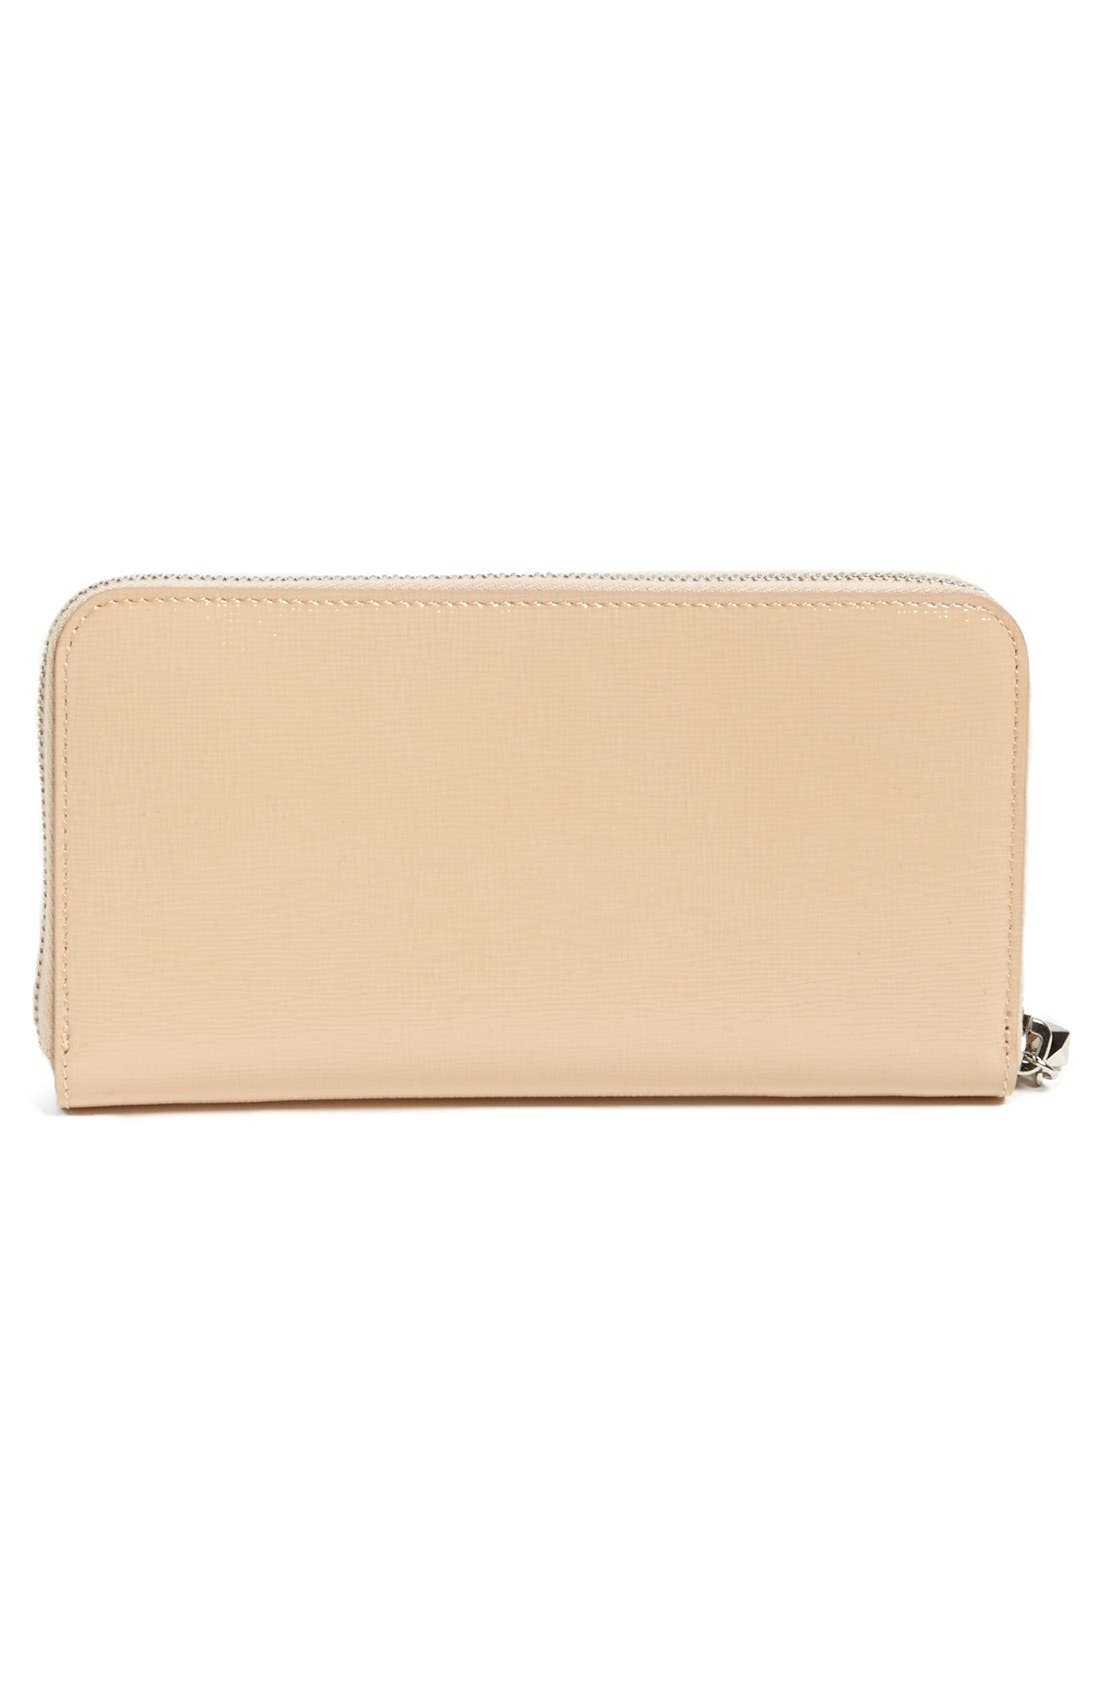 Alternate Image 3  - Fendi 'Crayons - Vernice' Leather Continental Wallet